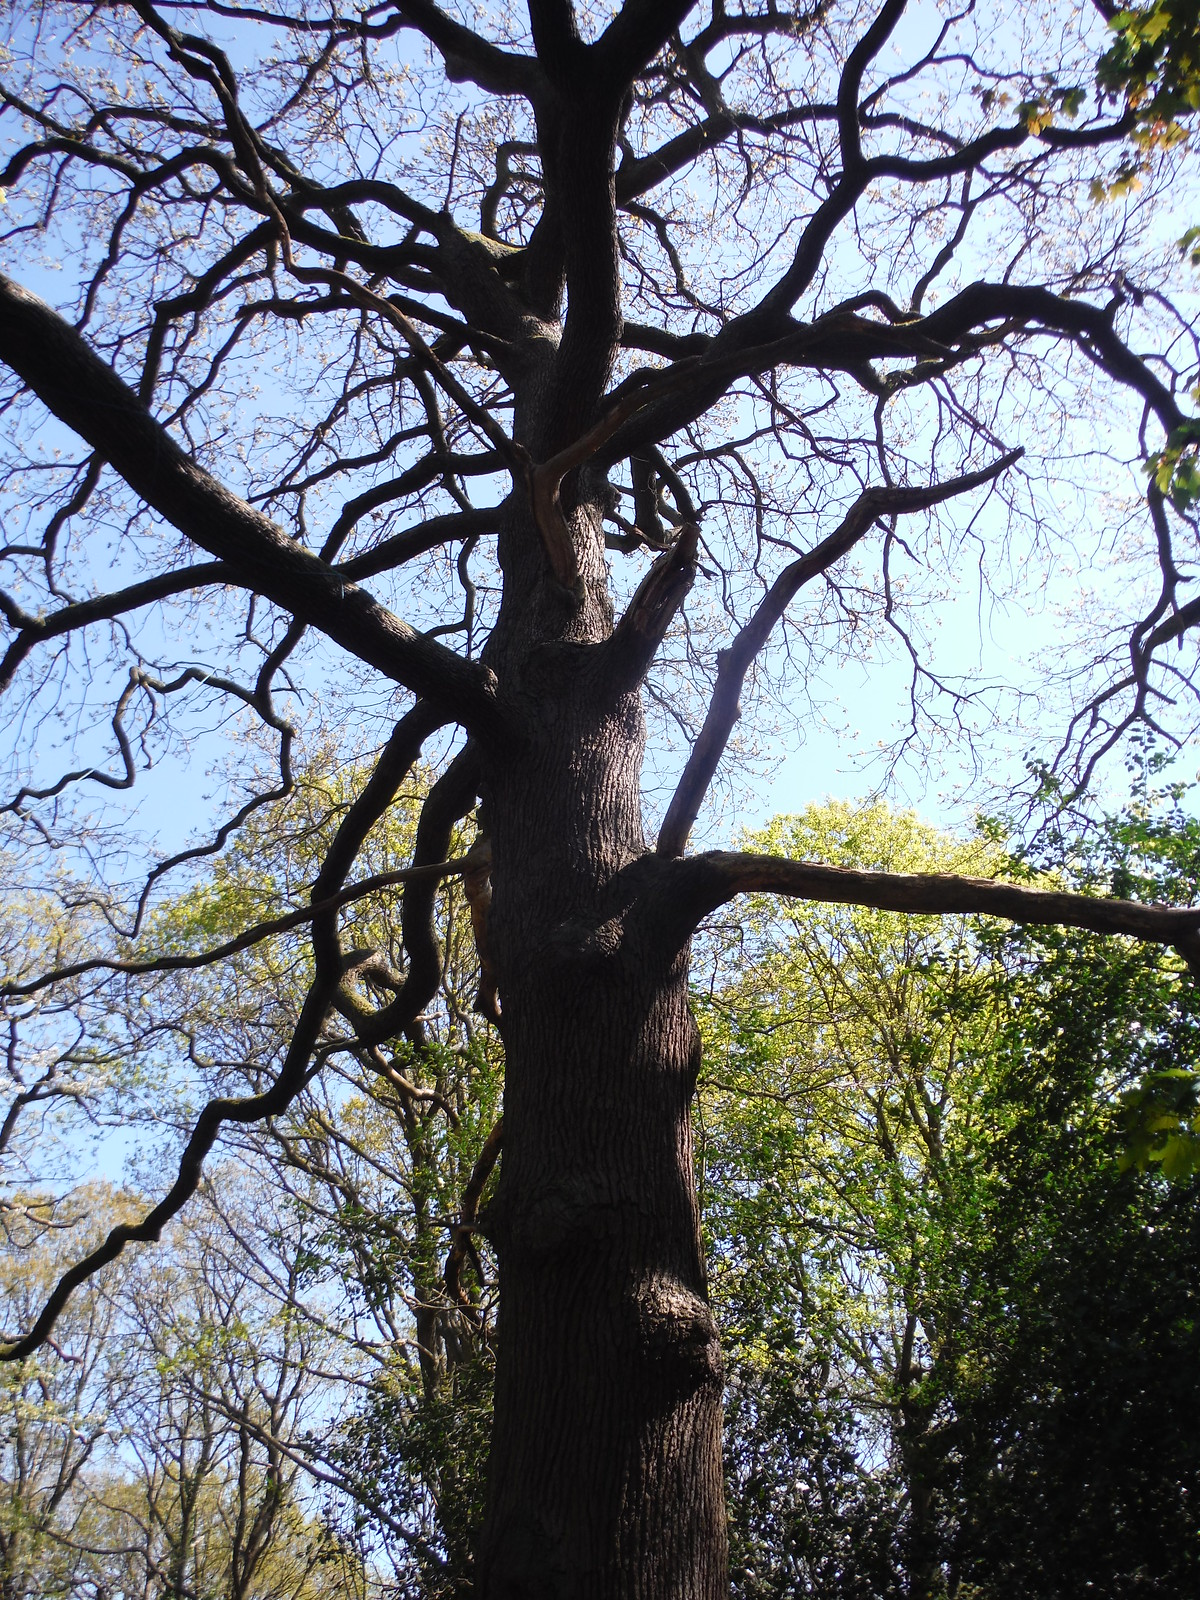 Tree in Jack Wood SWC Short Walk 44 - Oxleas Wood and Shooters Hill (Falconwood Circular)